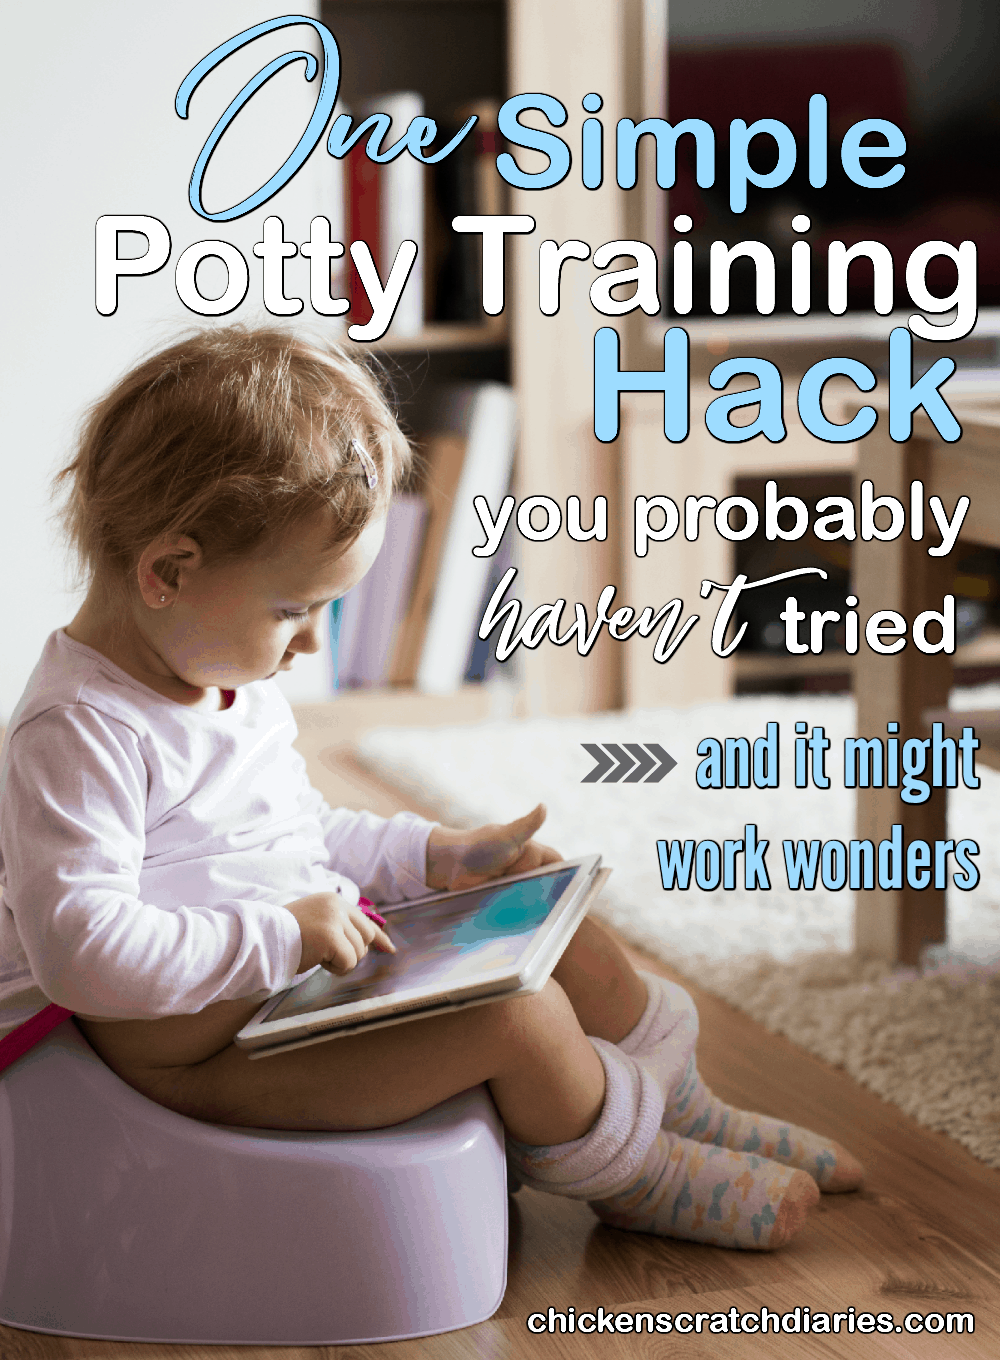 Potty training tips for when you've tried everything. This one idea might make the difference if your child is ready to potty train. #PottyTraining #Toddlers #Parenting #Advice